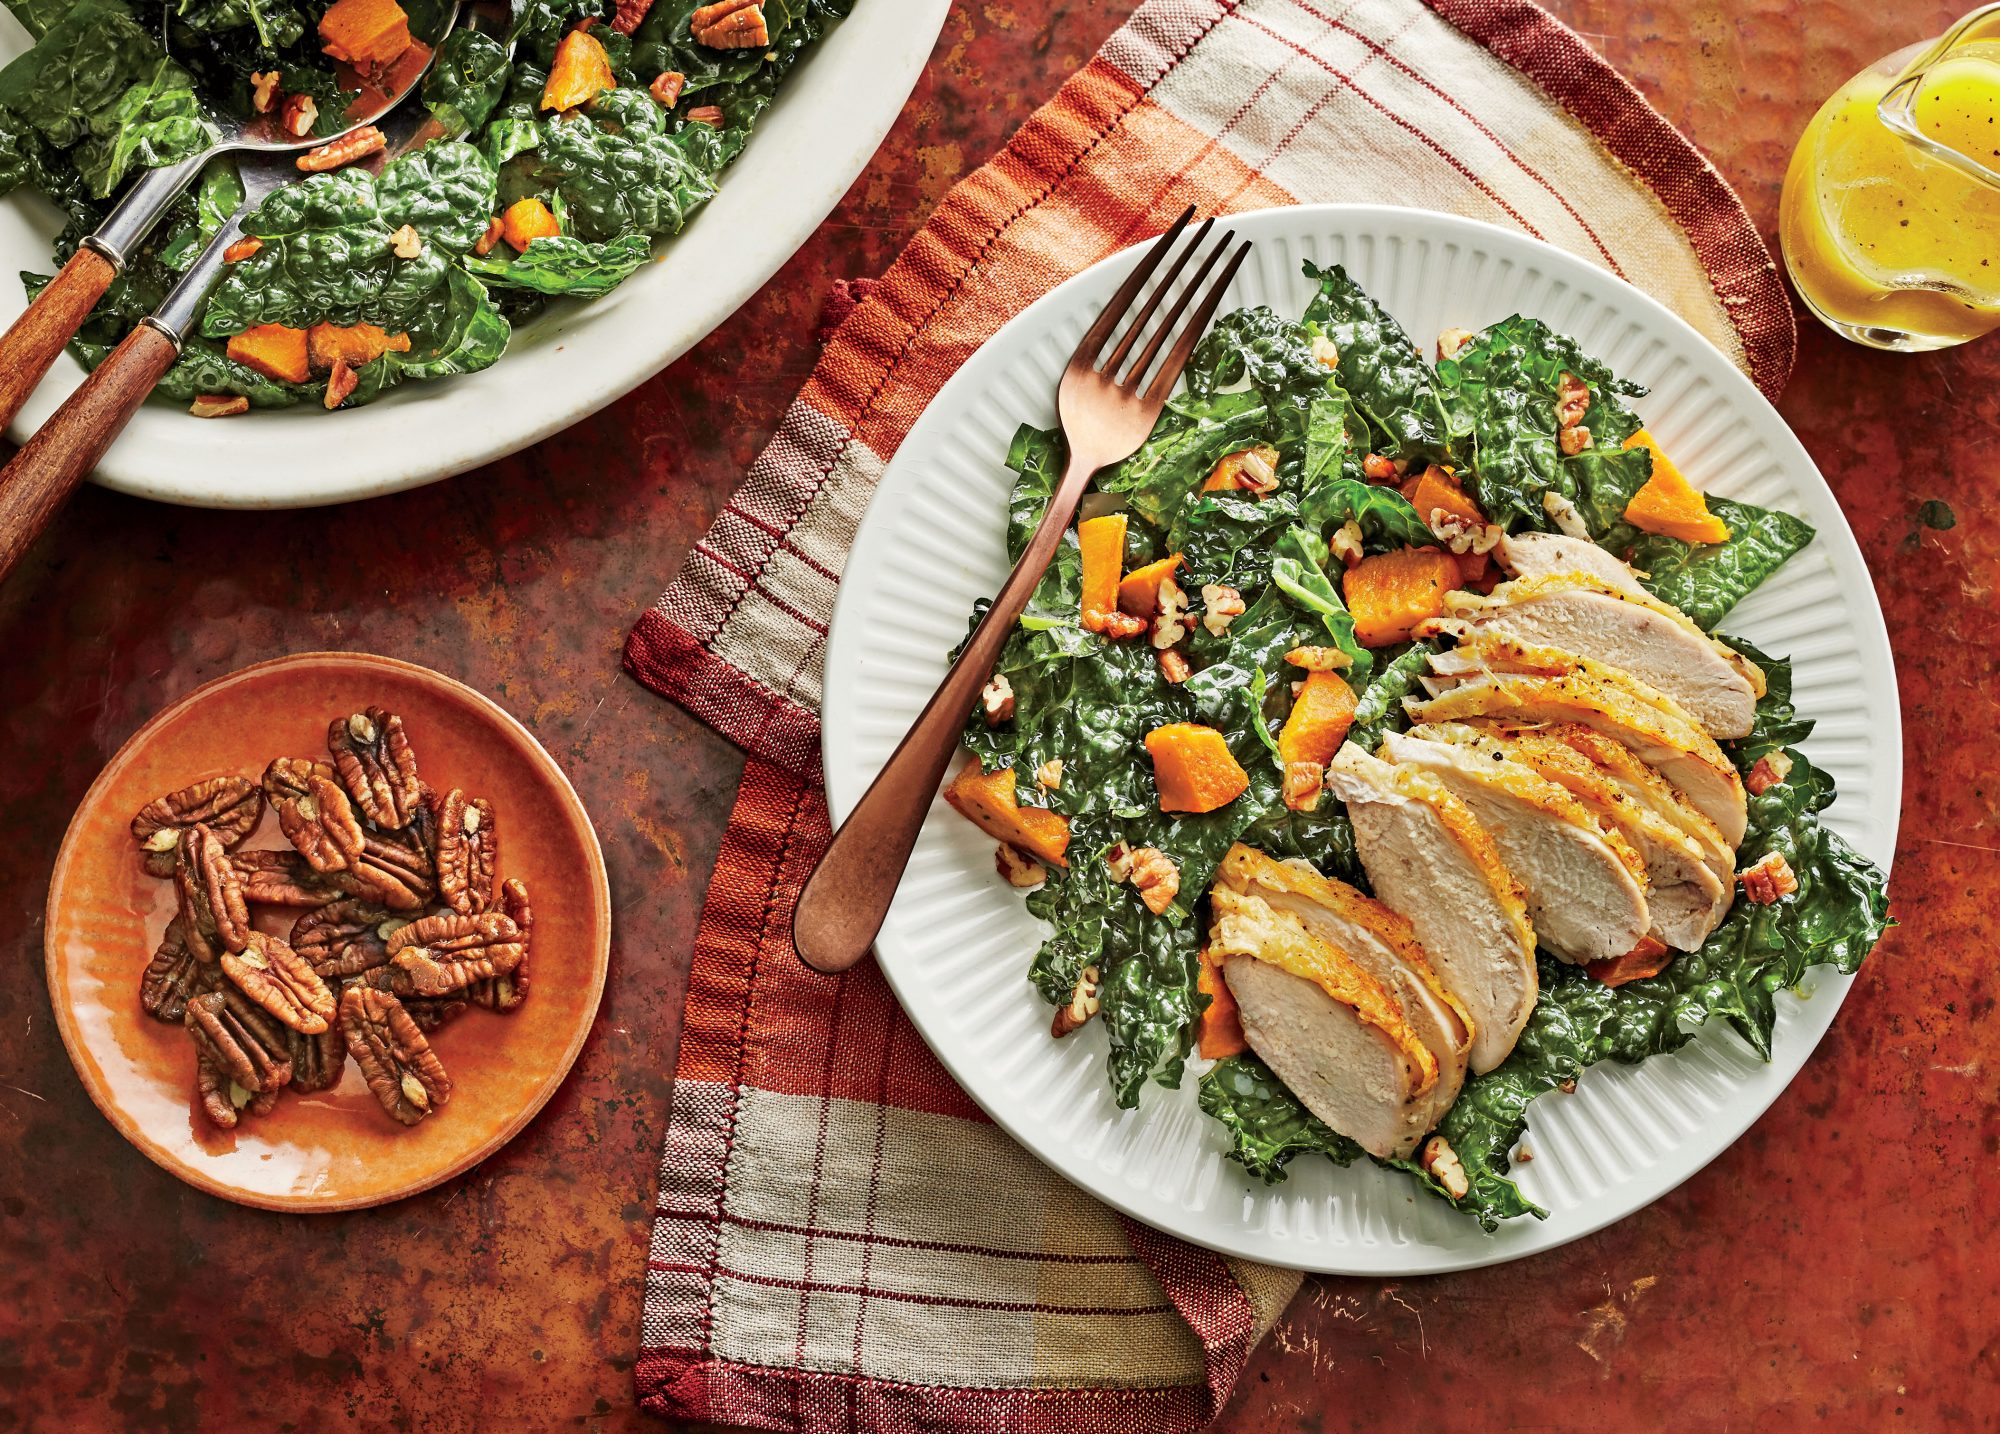 Kale and Sweet Potato Salad with Chicken